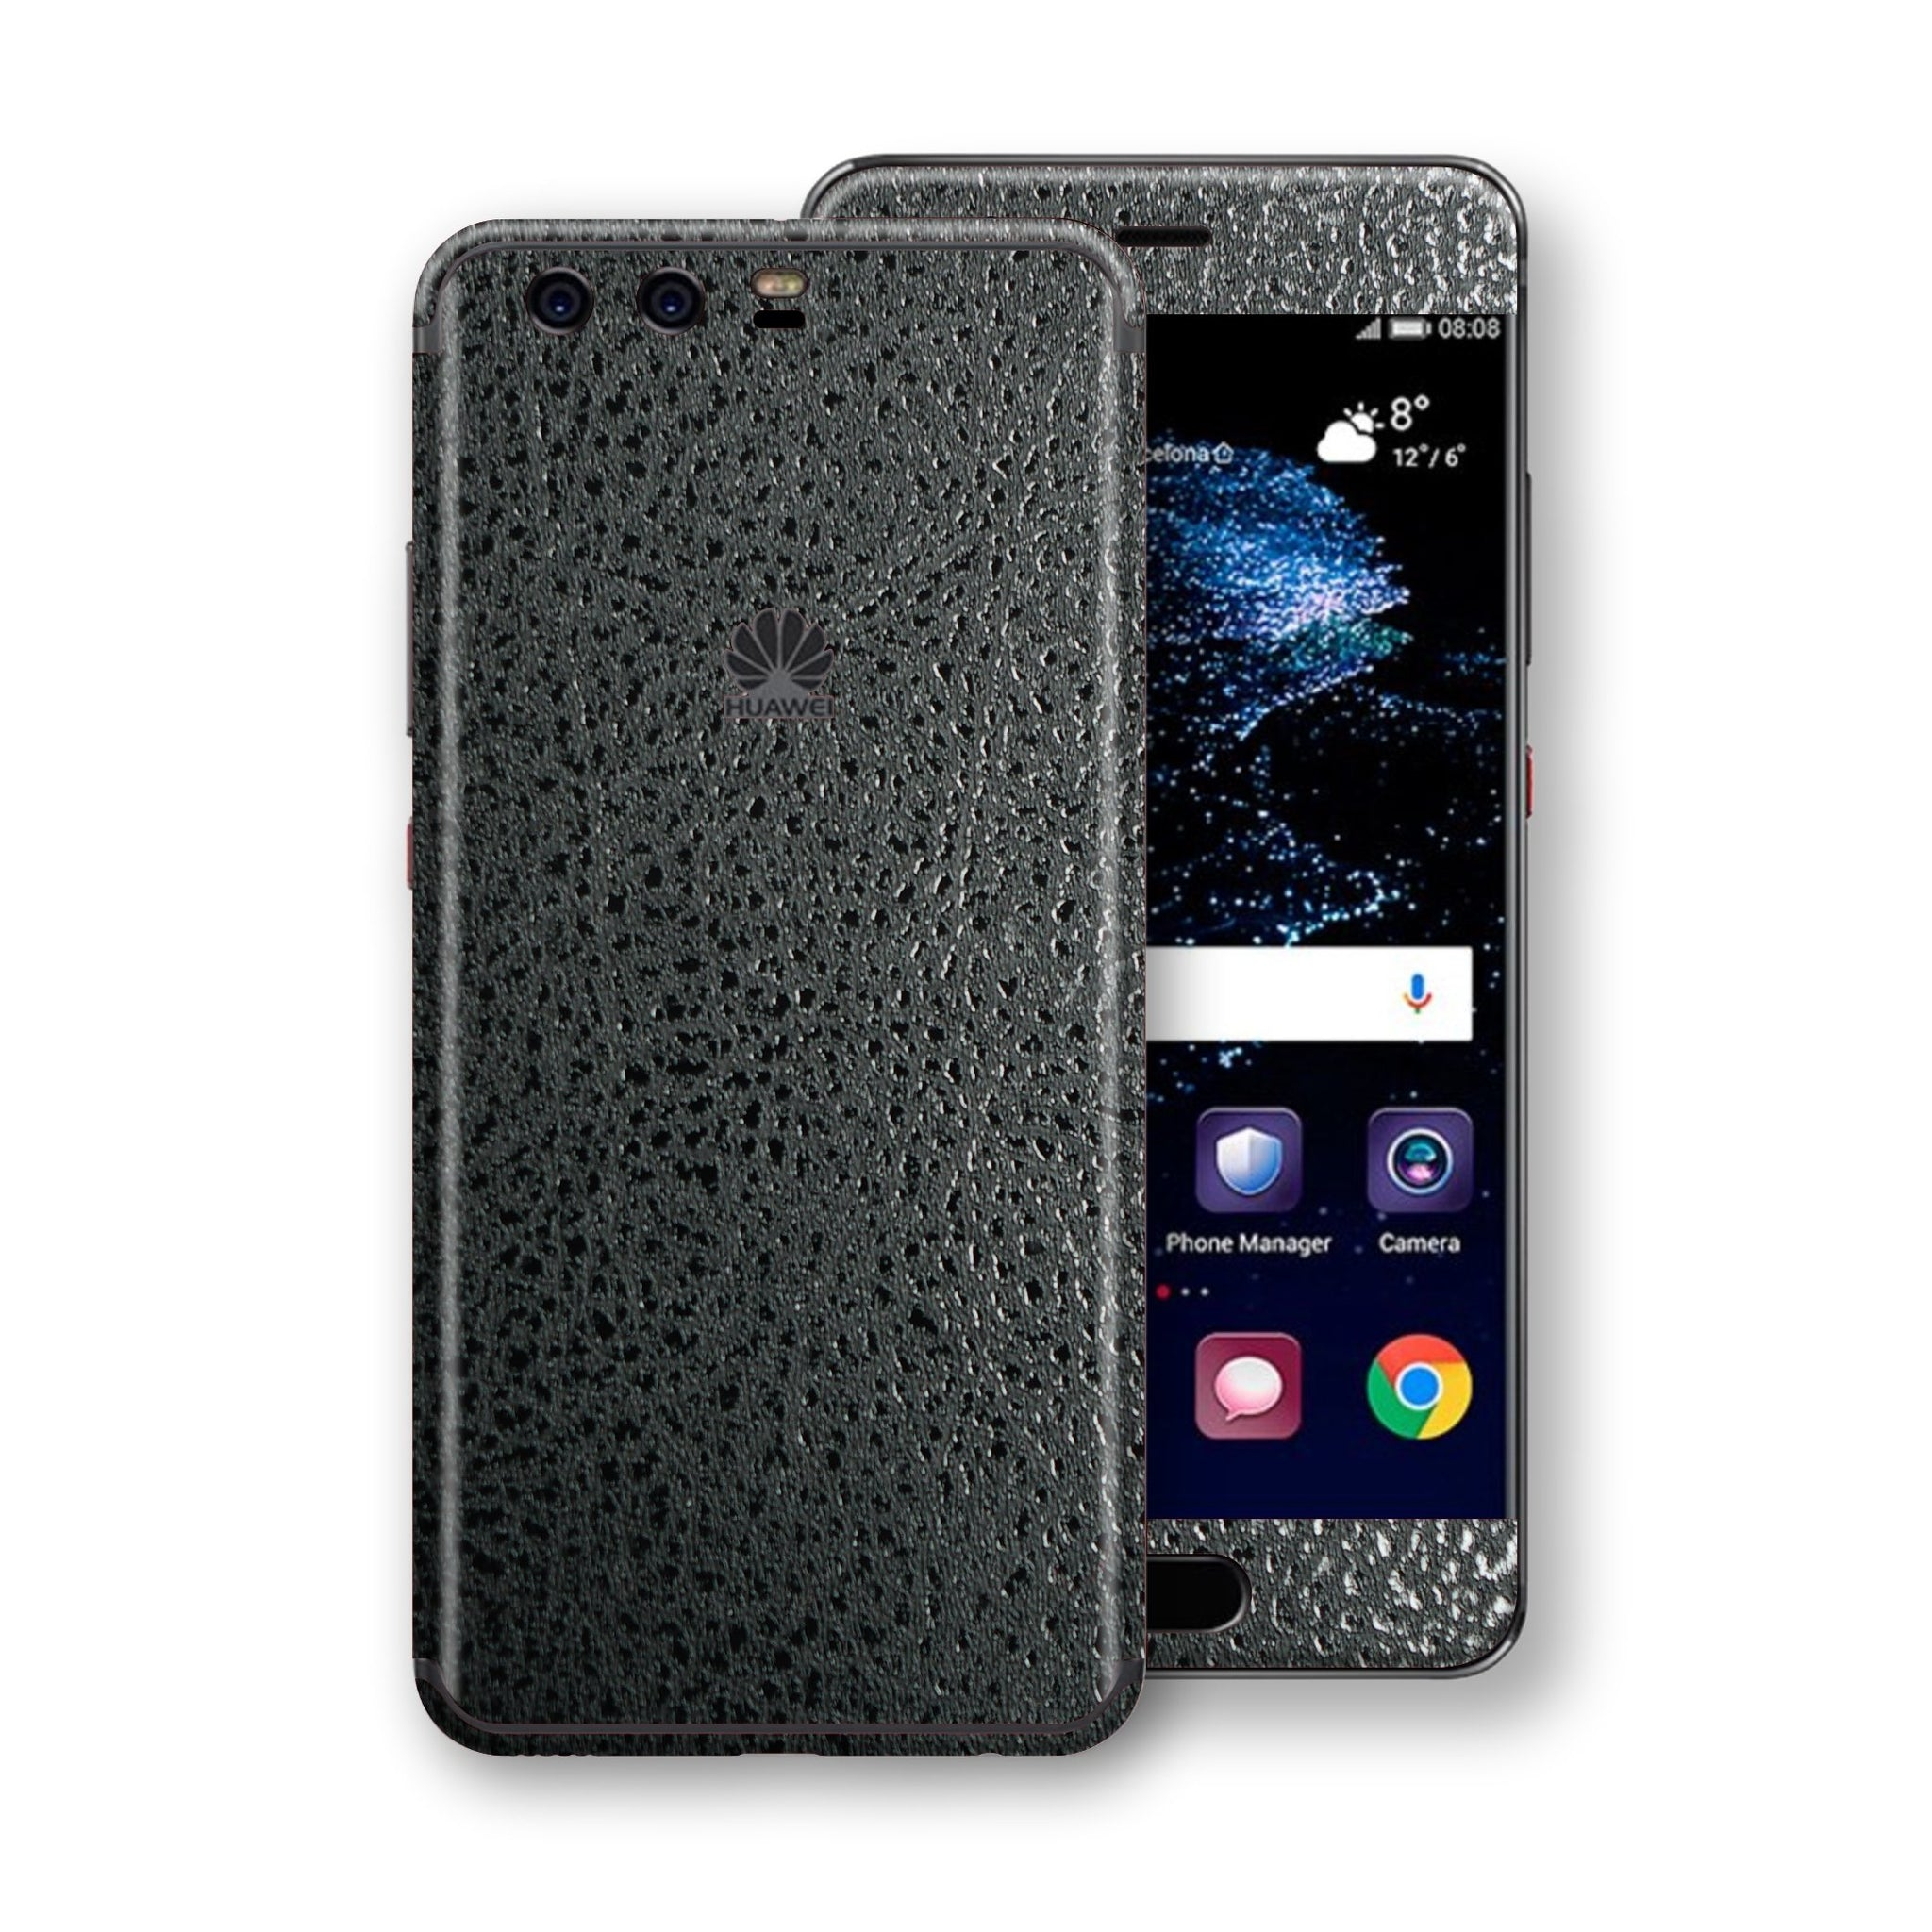 Huawei P10  Luxuria BLACK Leather Skin Wrap Decal Protector | EasySkinz